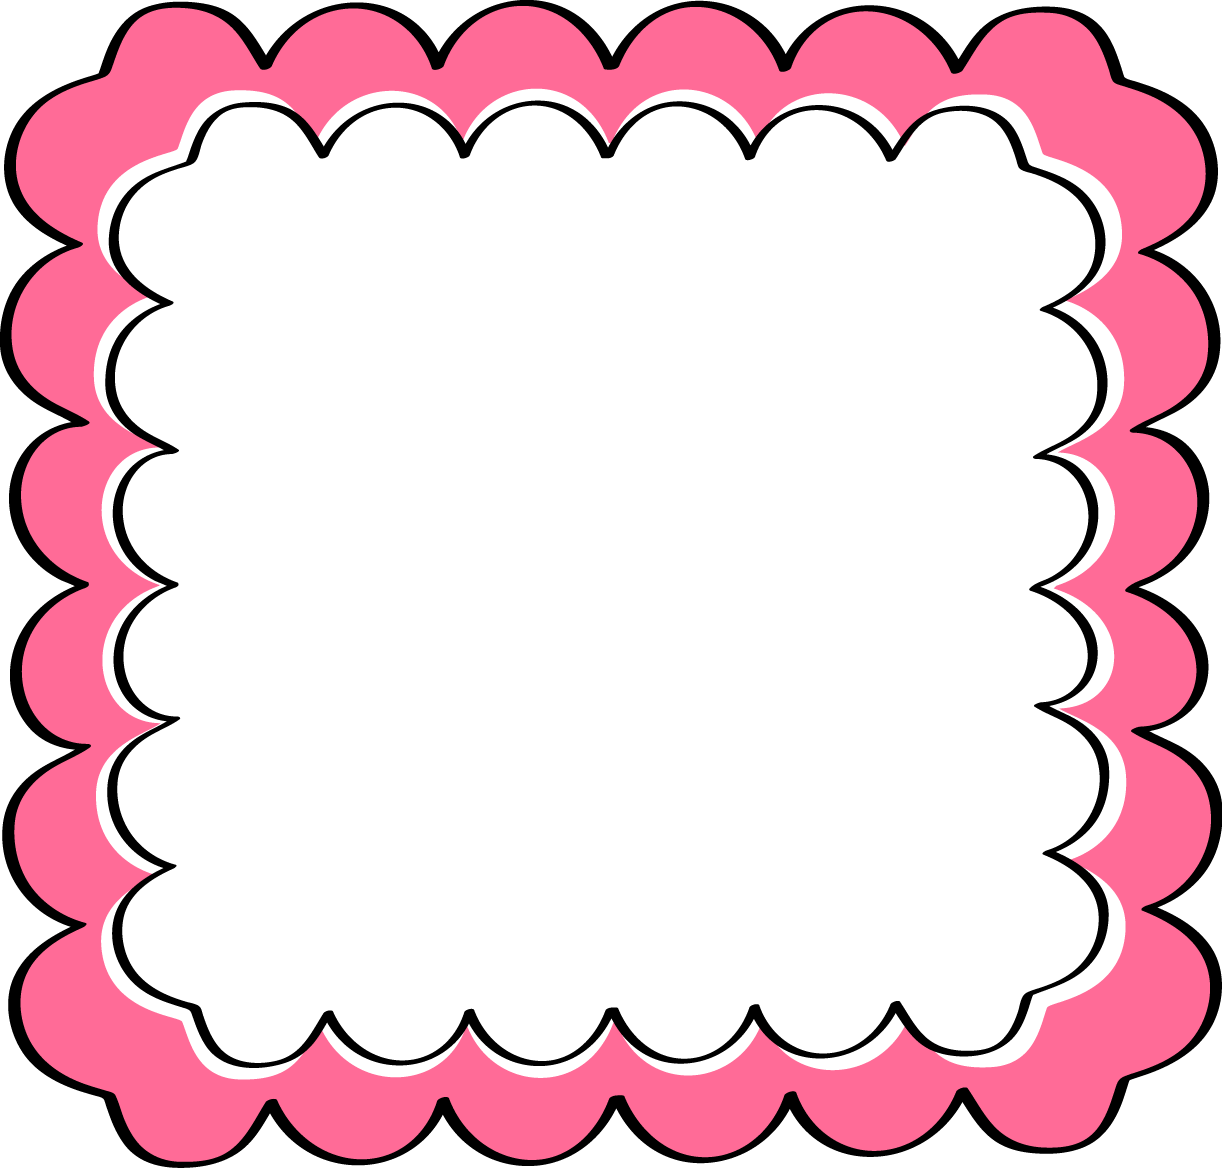 Fun Border Clipart | Free download best Fun Border Clipart on ...